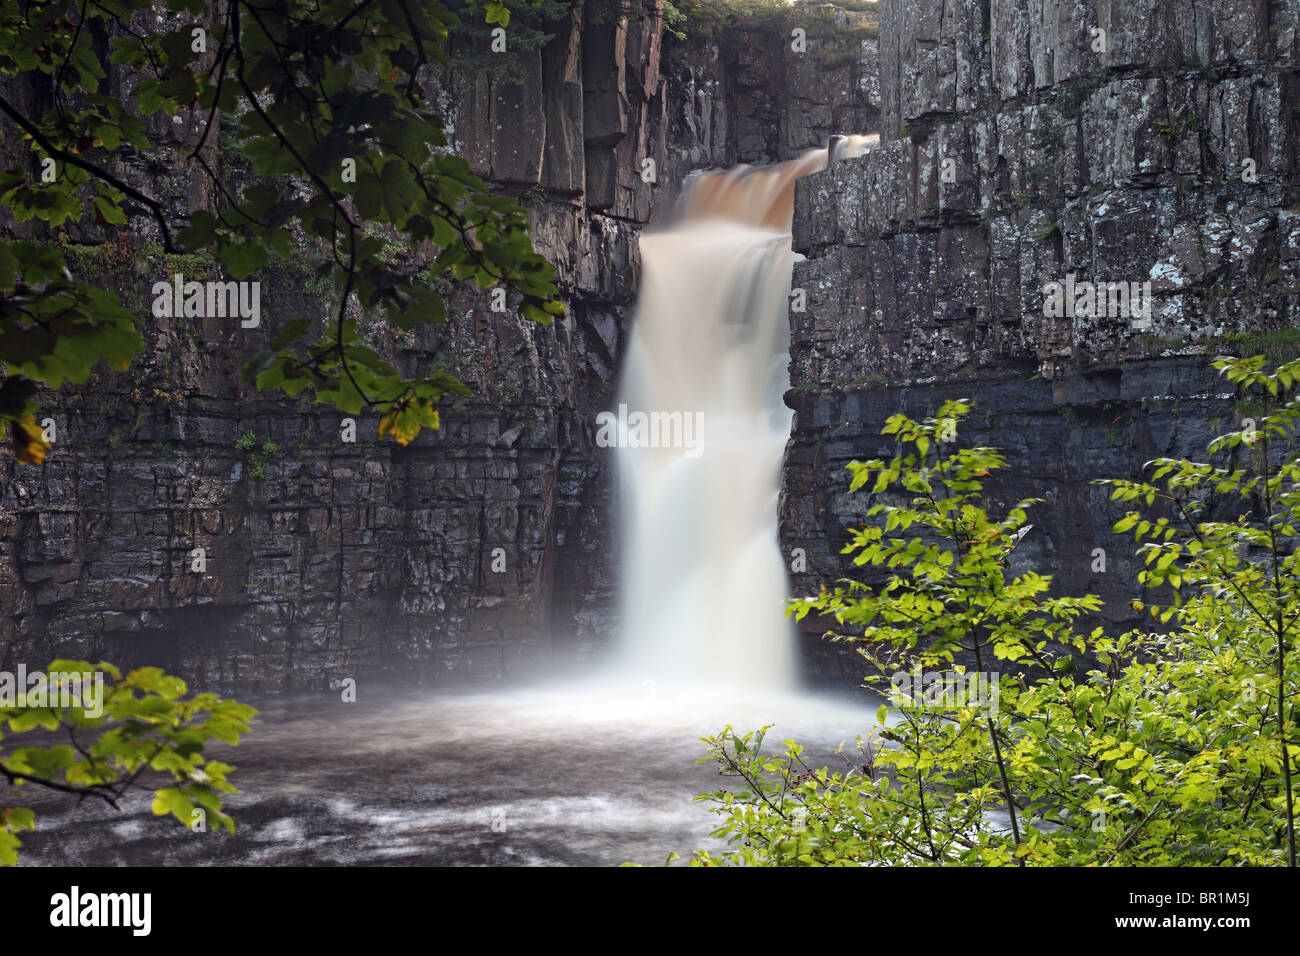 The River Tees Flowing Over High Force Waterfall Upper Teesdale County Durham UK - Stock Image